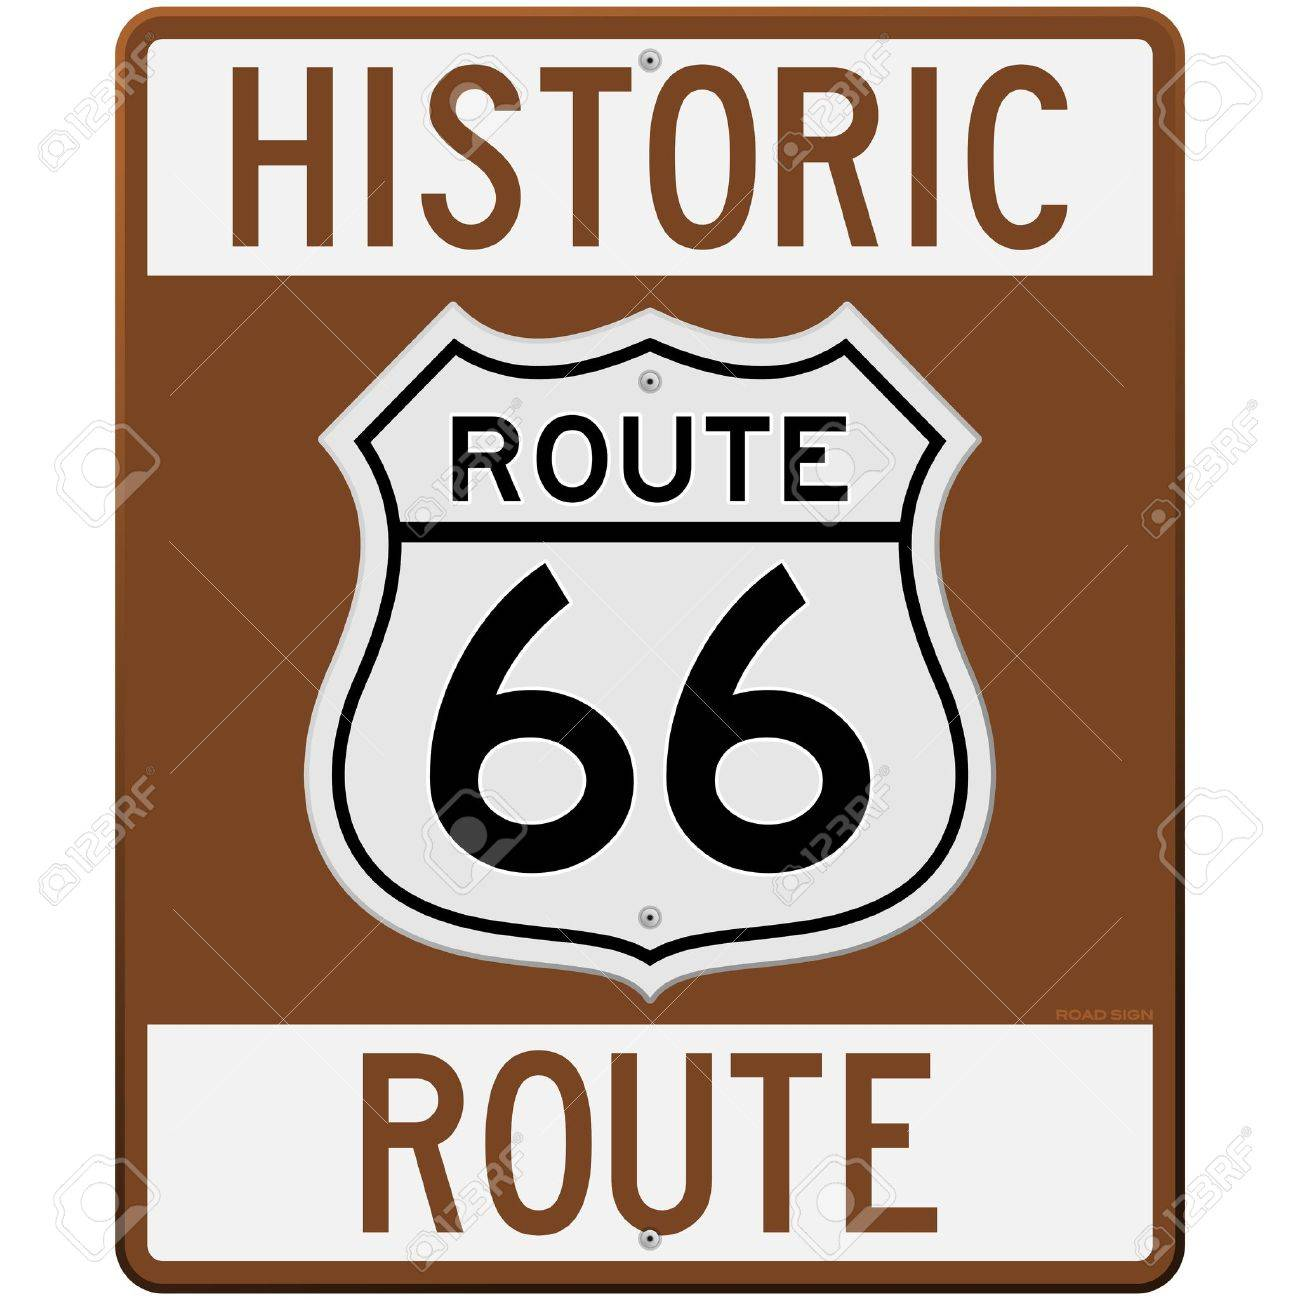 Historic Route 66 Sign Stock Vector - 11640184